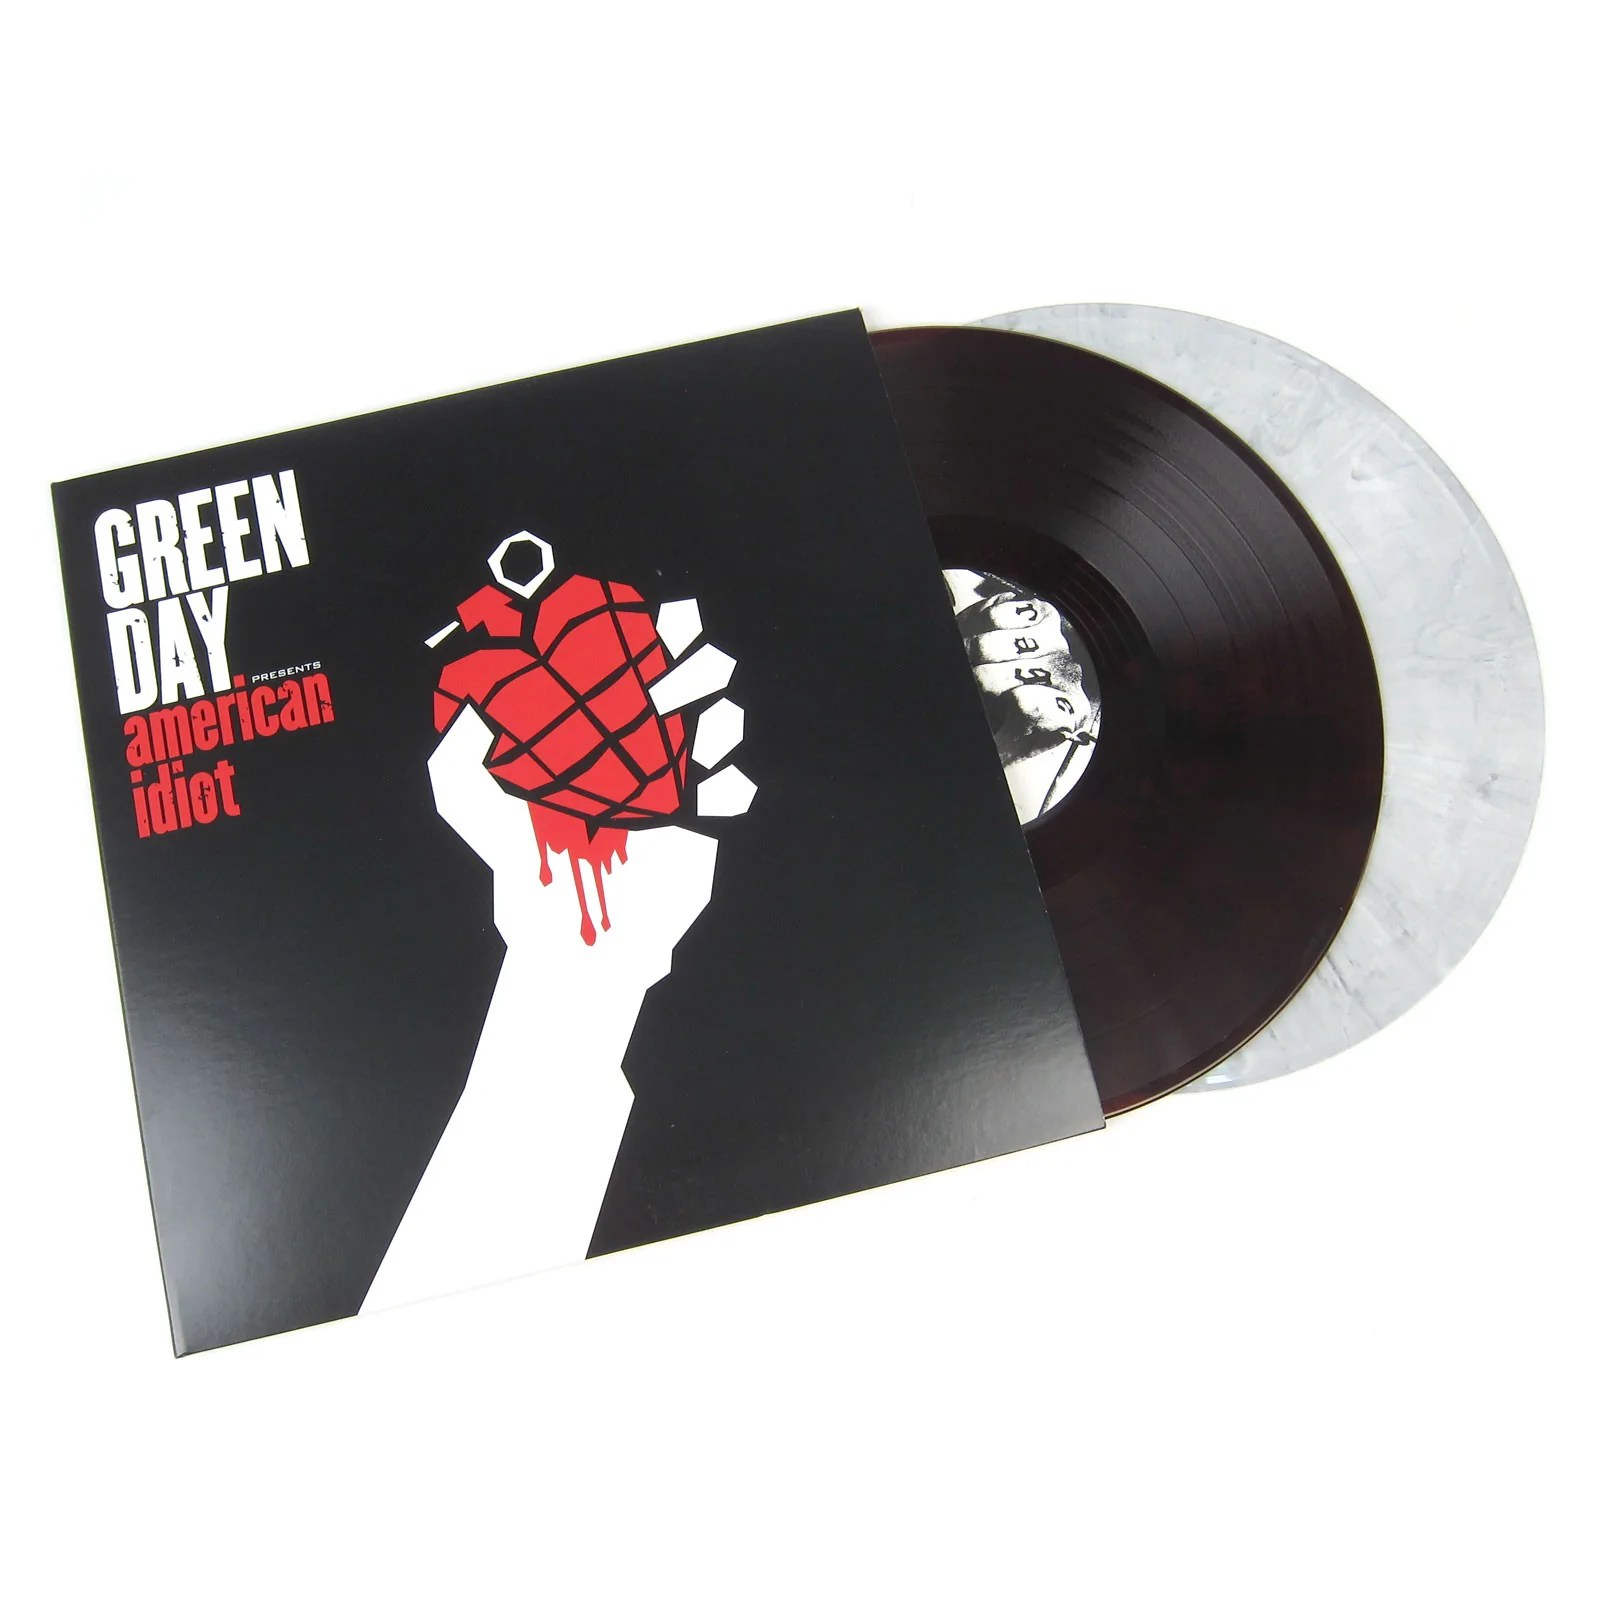 Green Day  American Idiot  Colored Vinyl  Vinyl 2LP  Record Store     Green Day  American Idiot  Colored Vinyl  Vinyl 2LP  Record Store Day